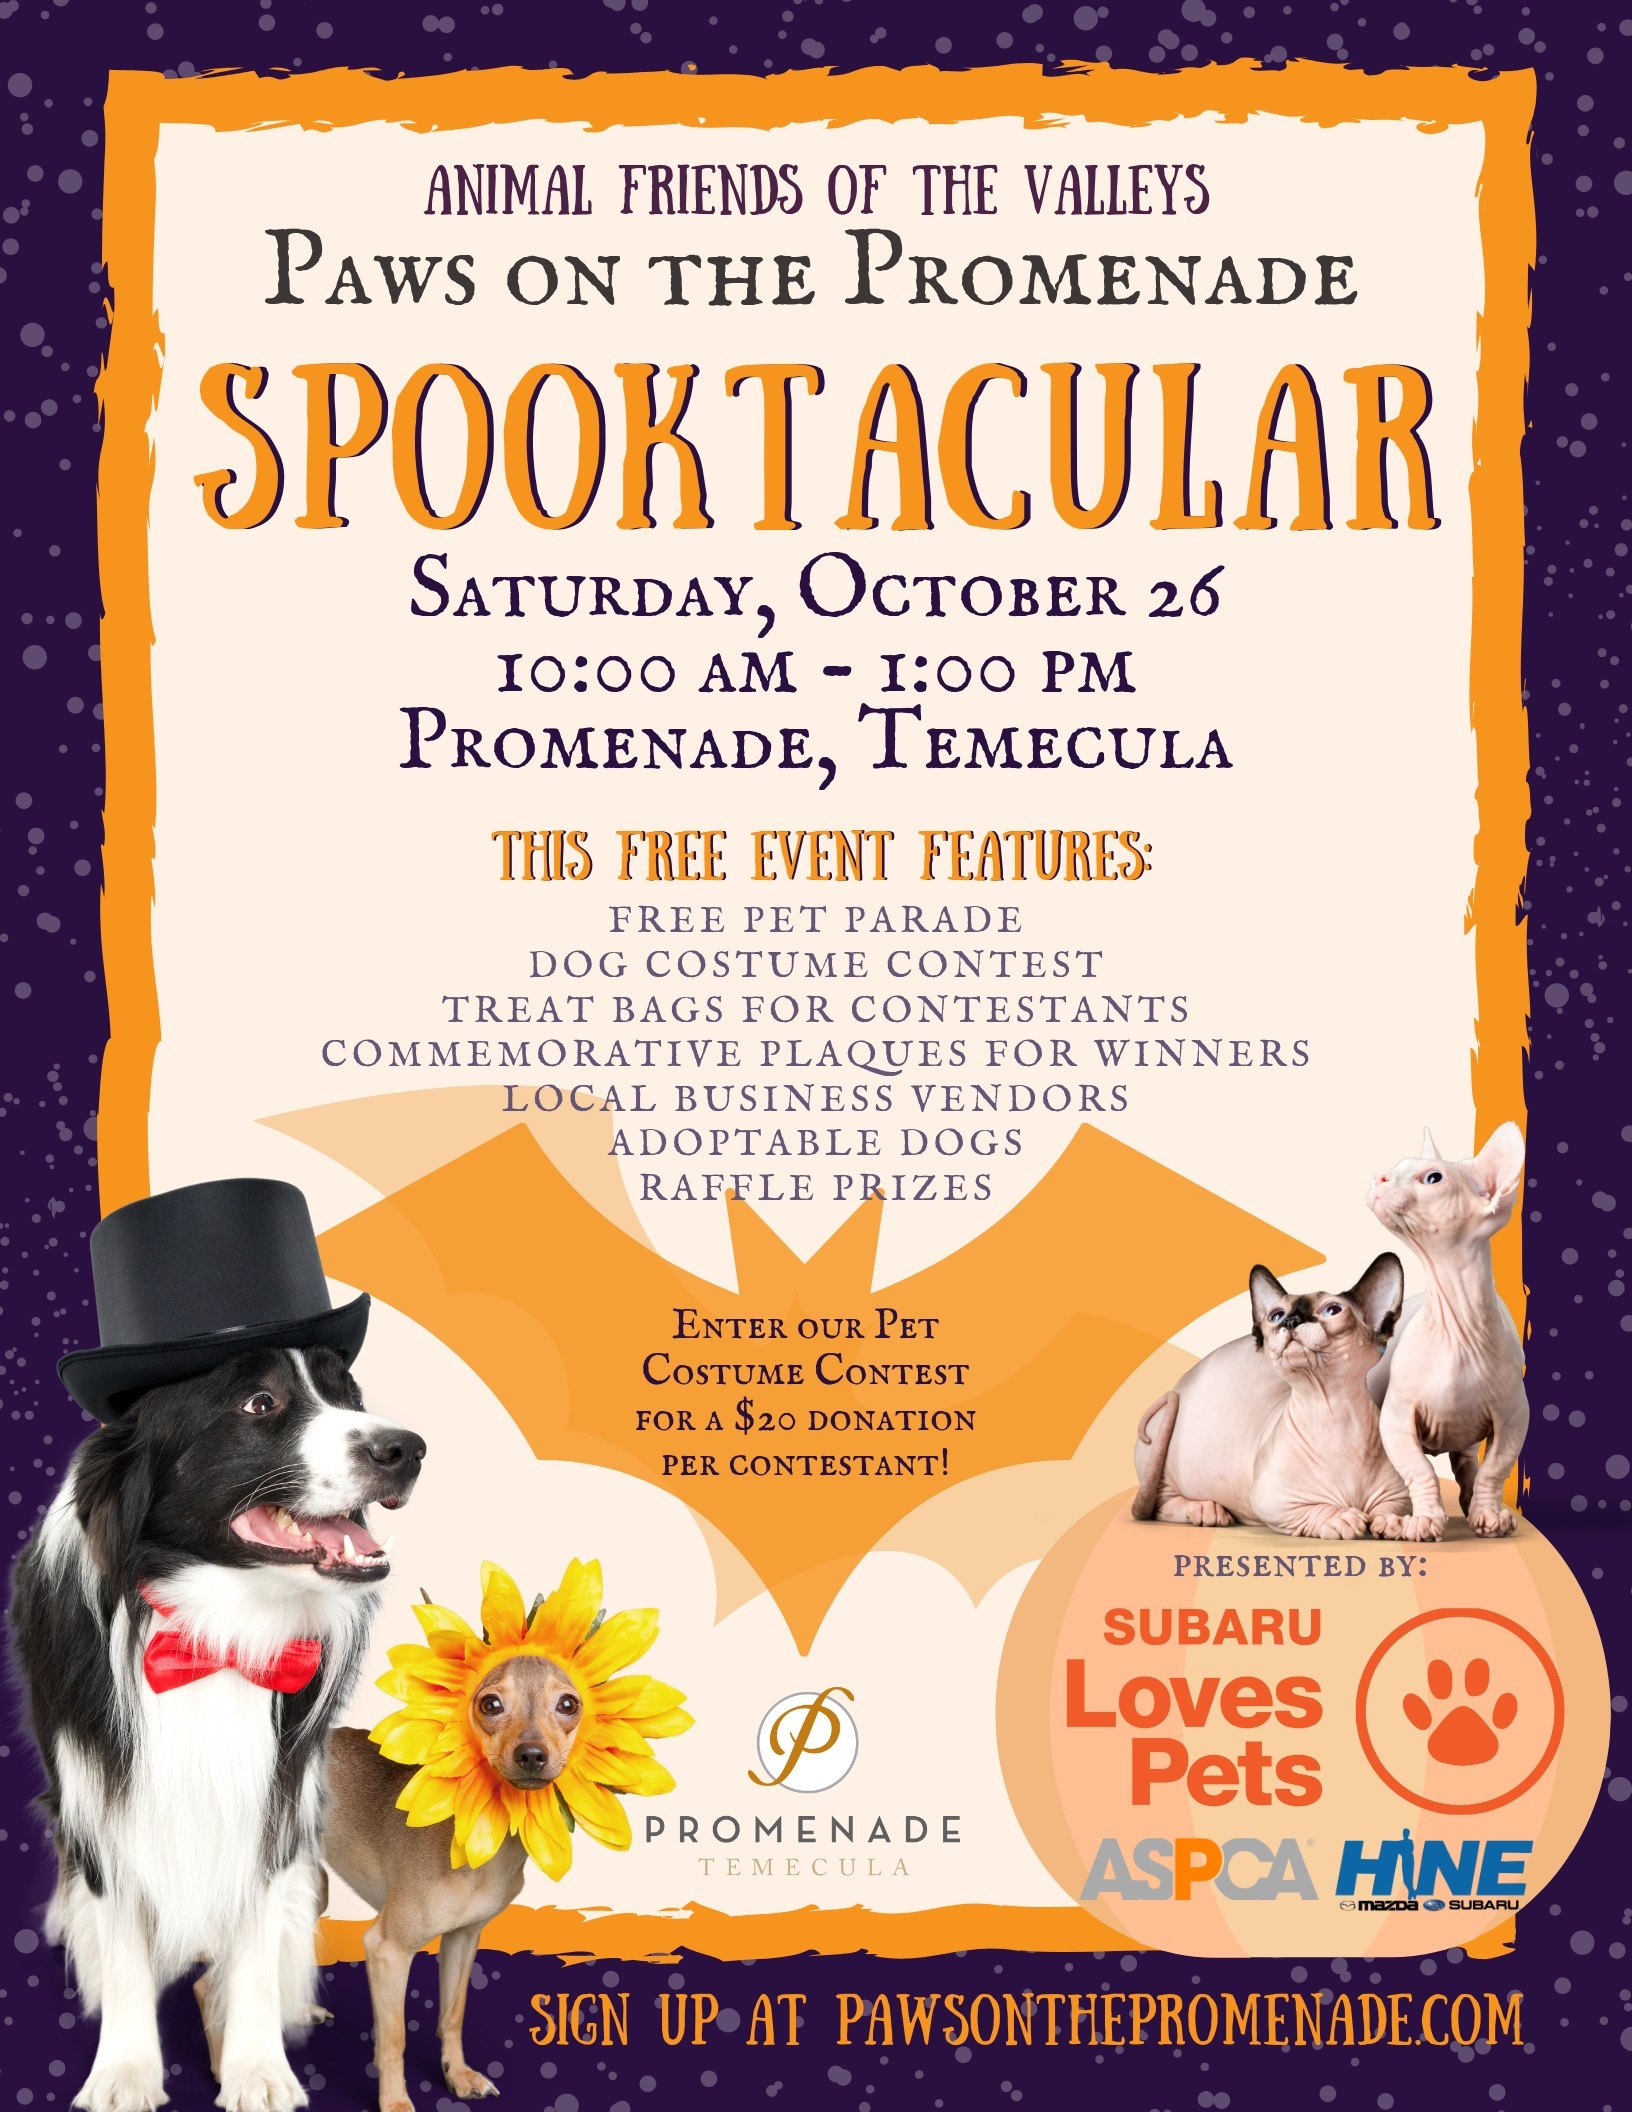 Paws on the Promenade 2019 Flyer